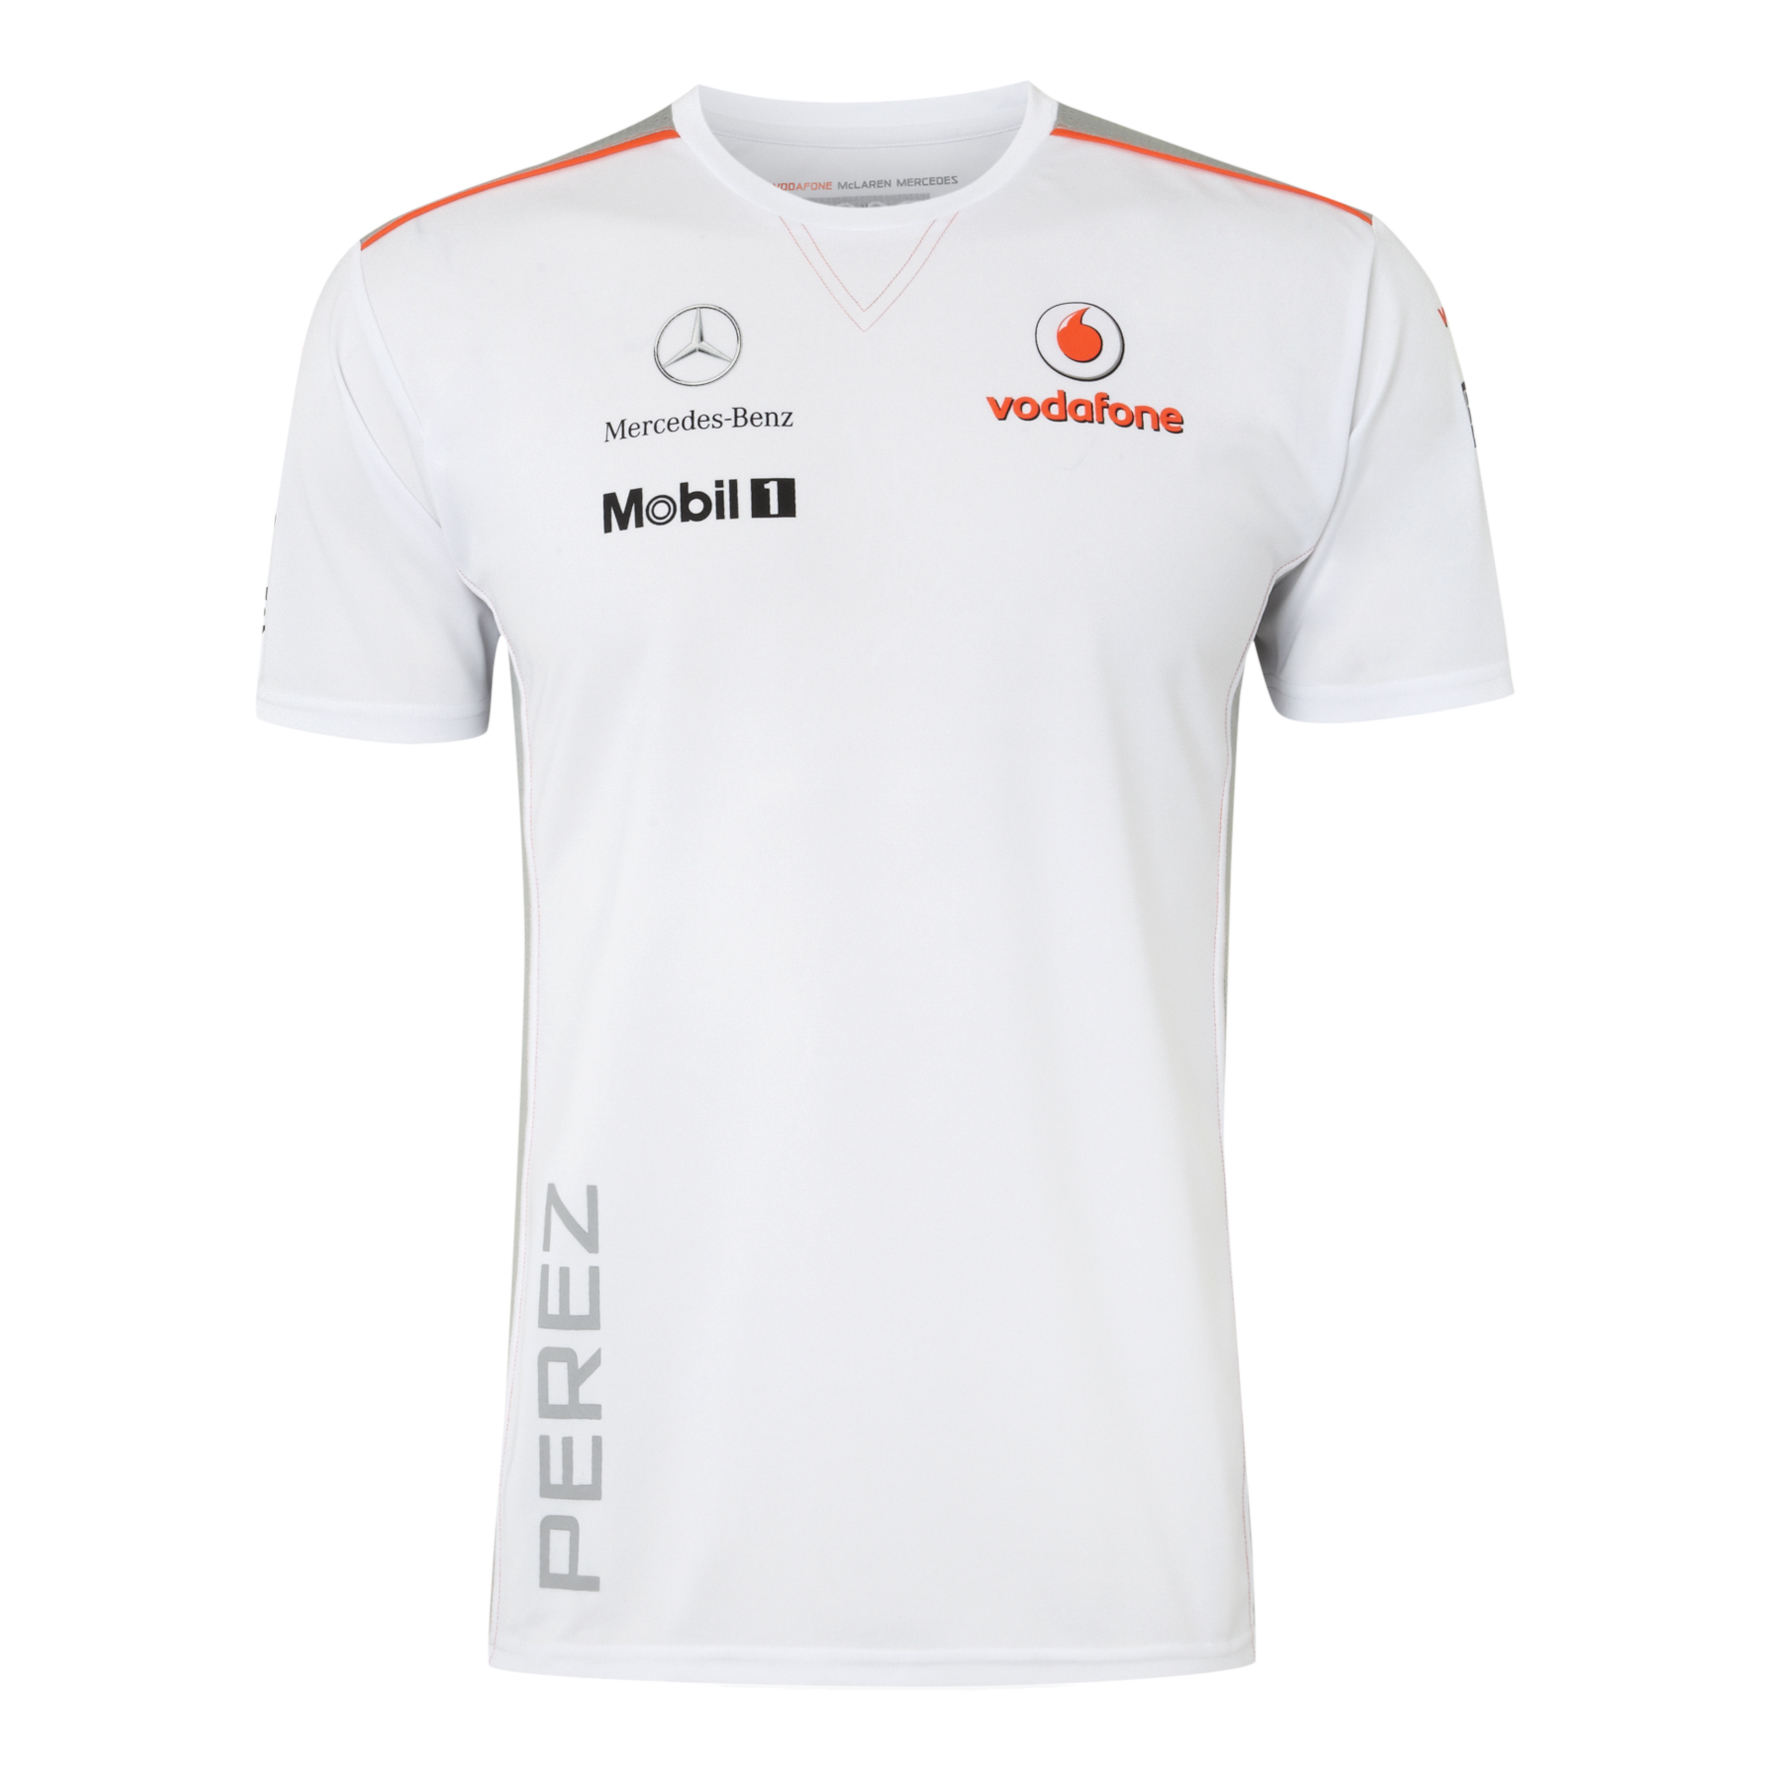 Vodafone McLaren Mercedes 2013 Perez  T-Shirt